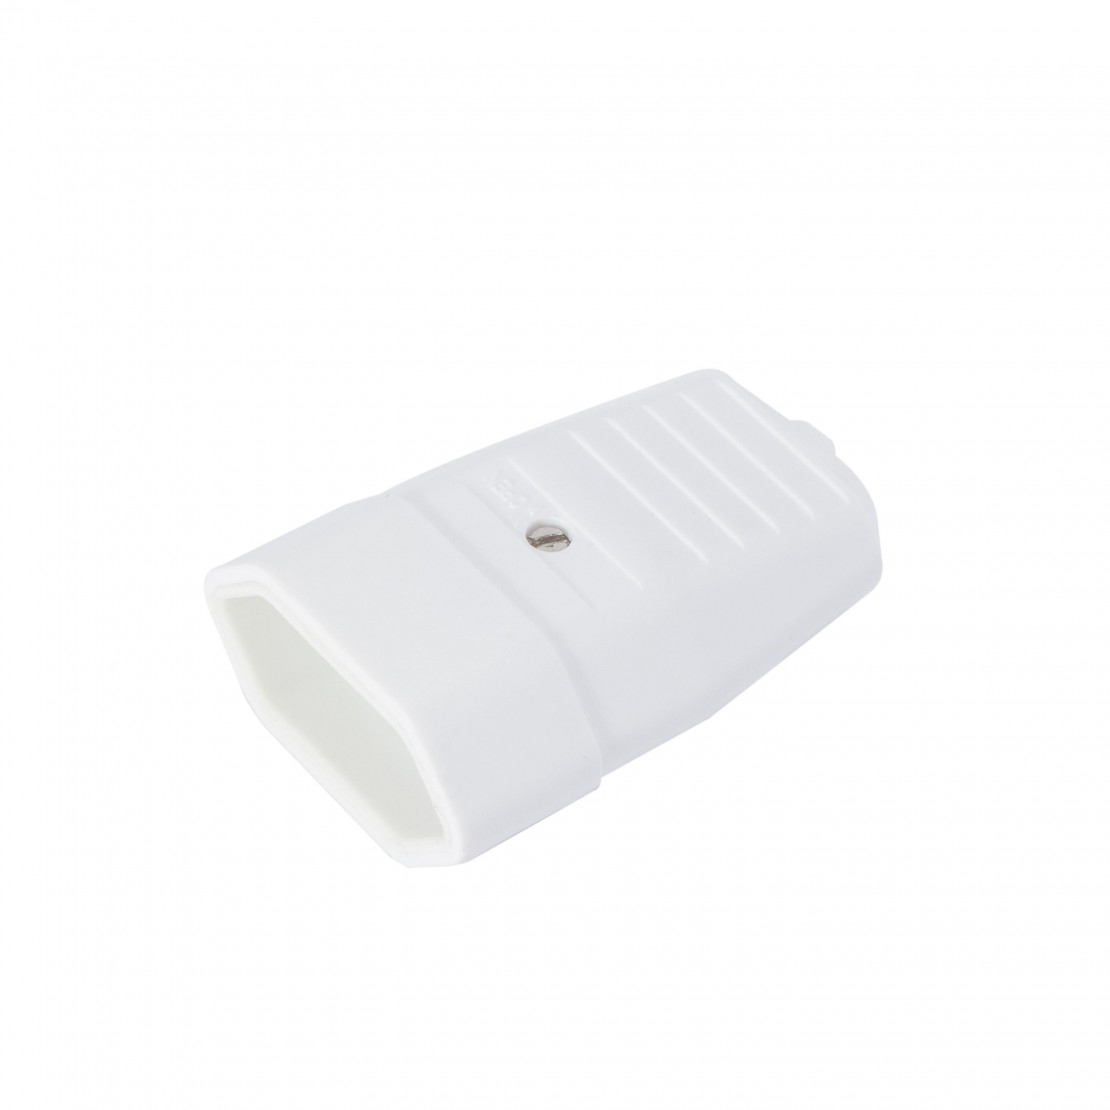 Flat mobile socket - 2.5 A white (2 pcs)